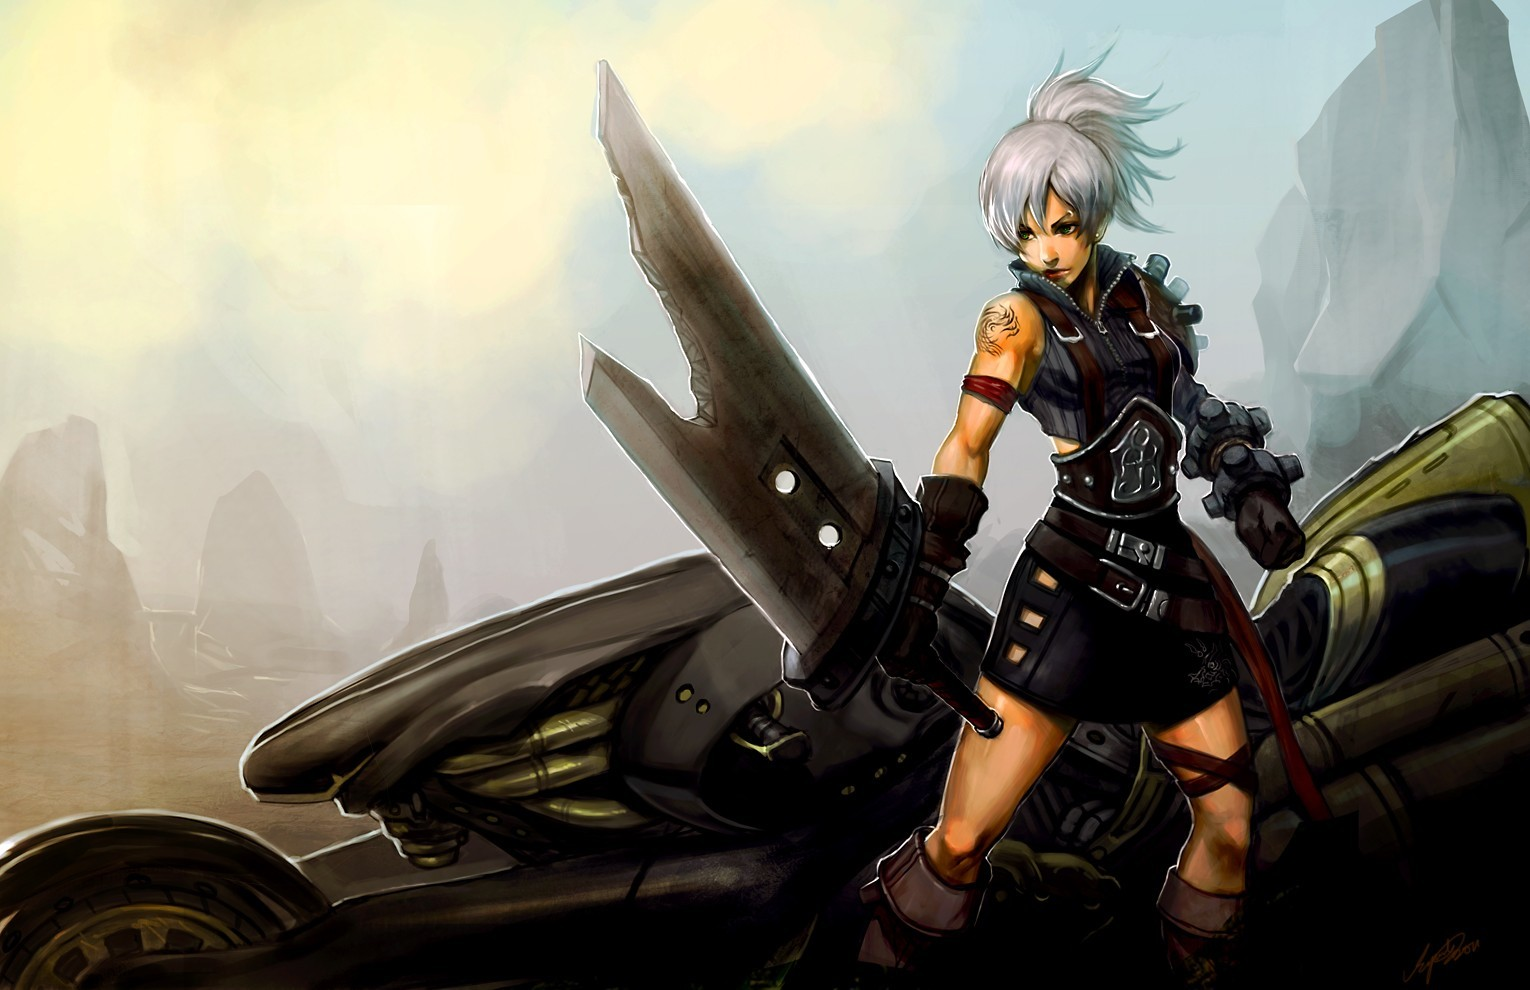 woman Final Fantasy text HD Wallpaper